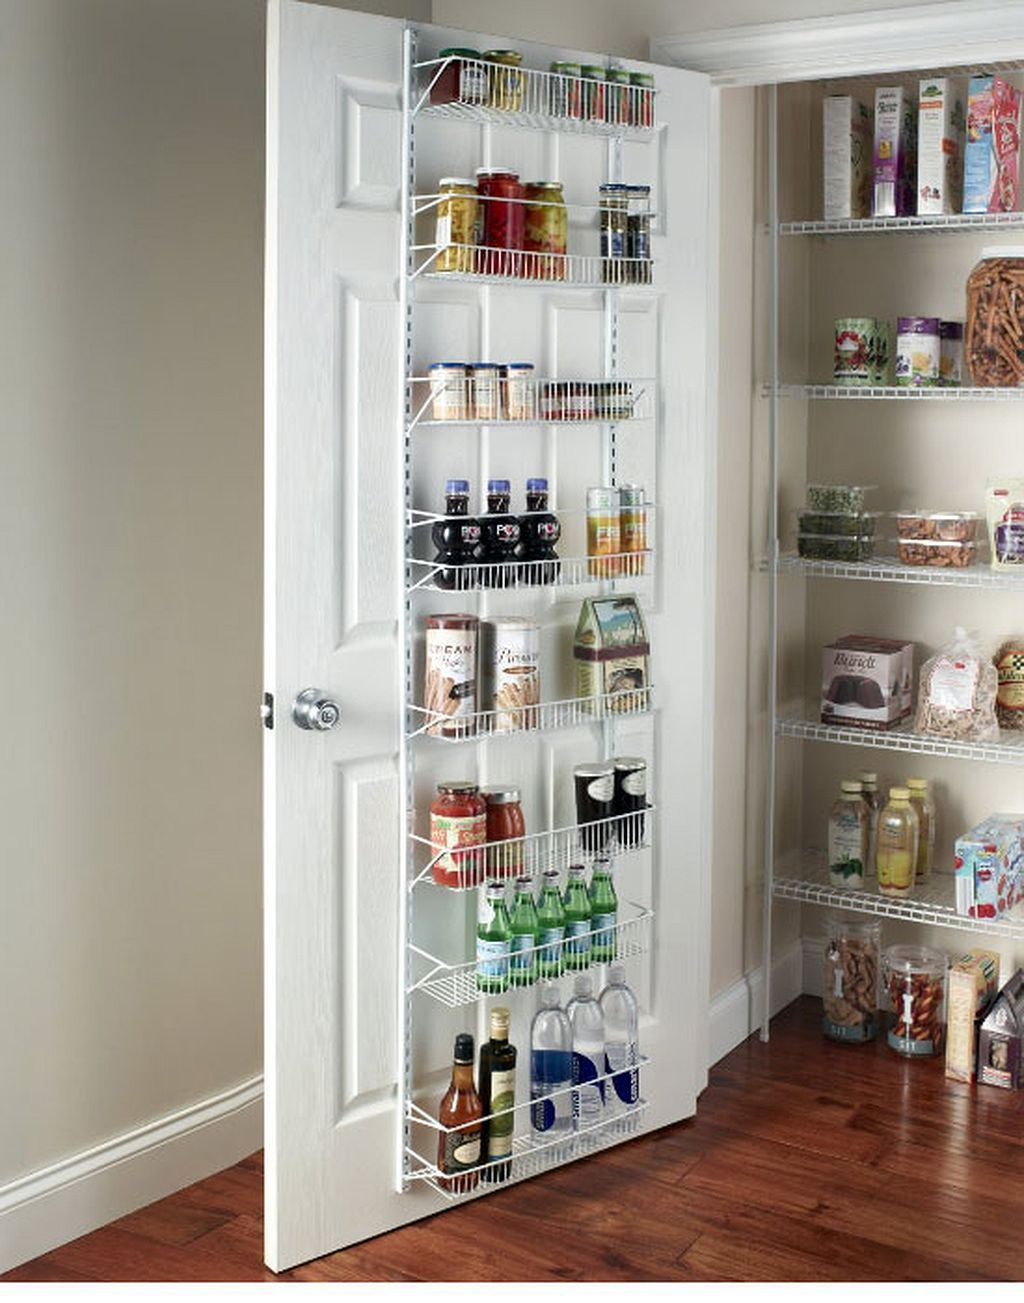 Clever Apartement Storage Ideas for Small Spaces | Home ...